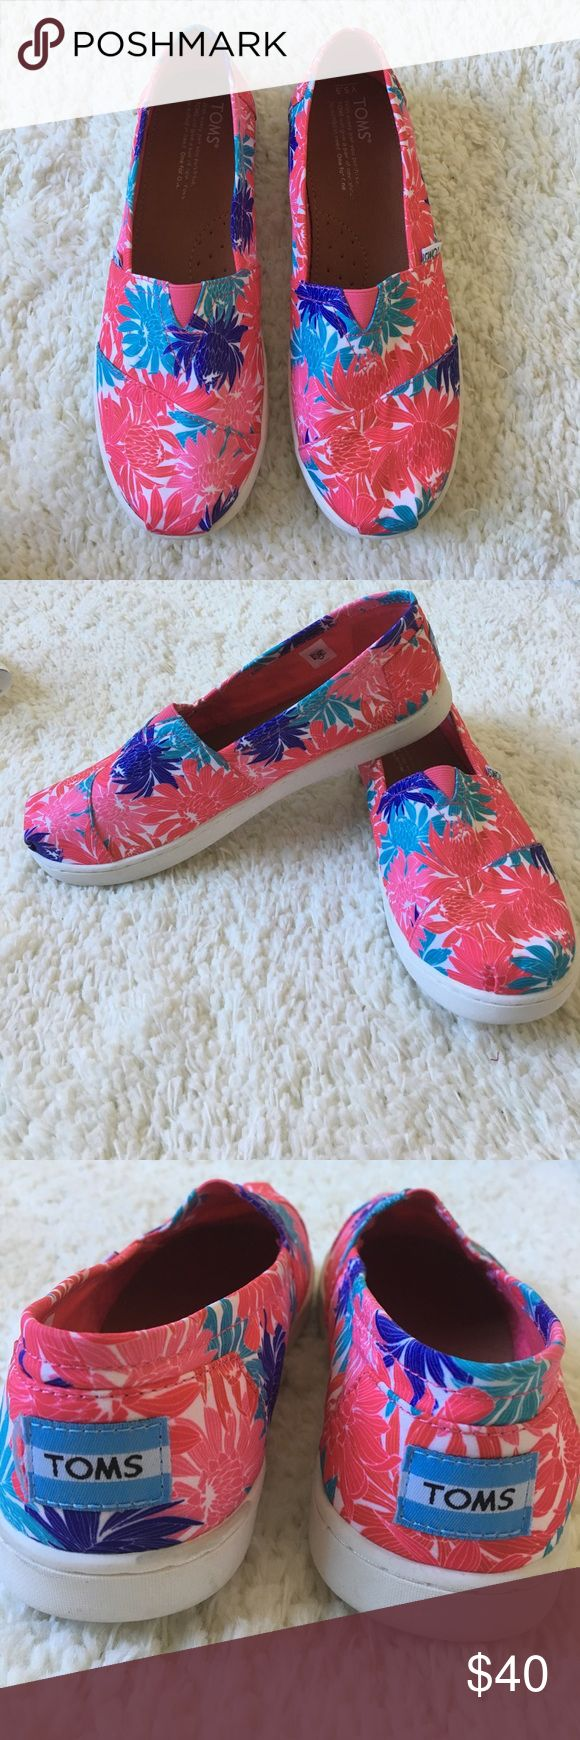 Floral Print Toms Pink floral Toms. Plastic bottoms. Brand new without box. Size 5.5 youth. But fits like a women's size 7.5 Toms Shoes Flats & Loafers